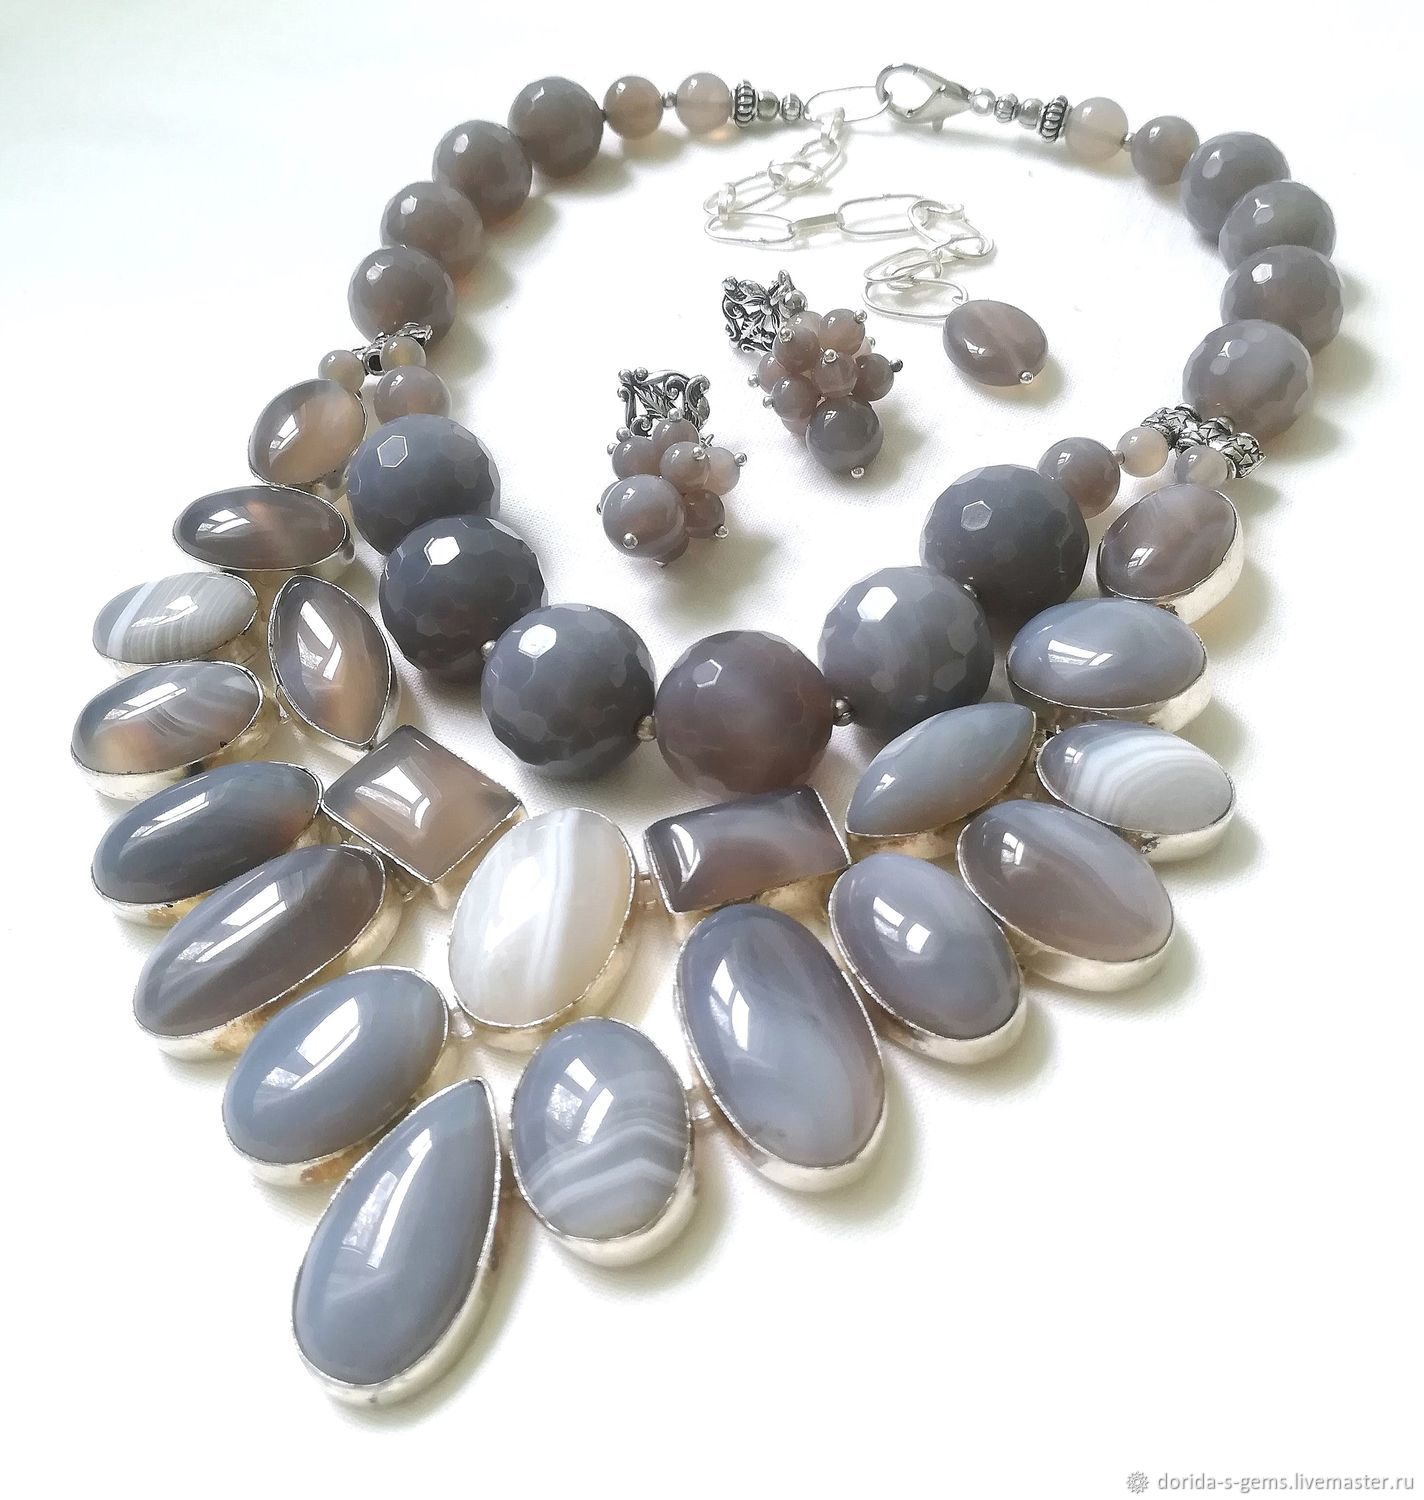 necklace, designer necklace, necklace for every day necklace out, the necklace of agate, agate necklace, necklace for gift, agate beads, grey agate beads, beads stones, grey agate necklace, agate jewe